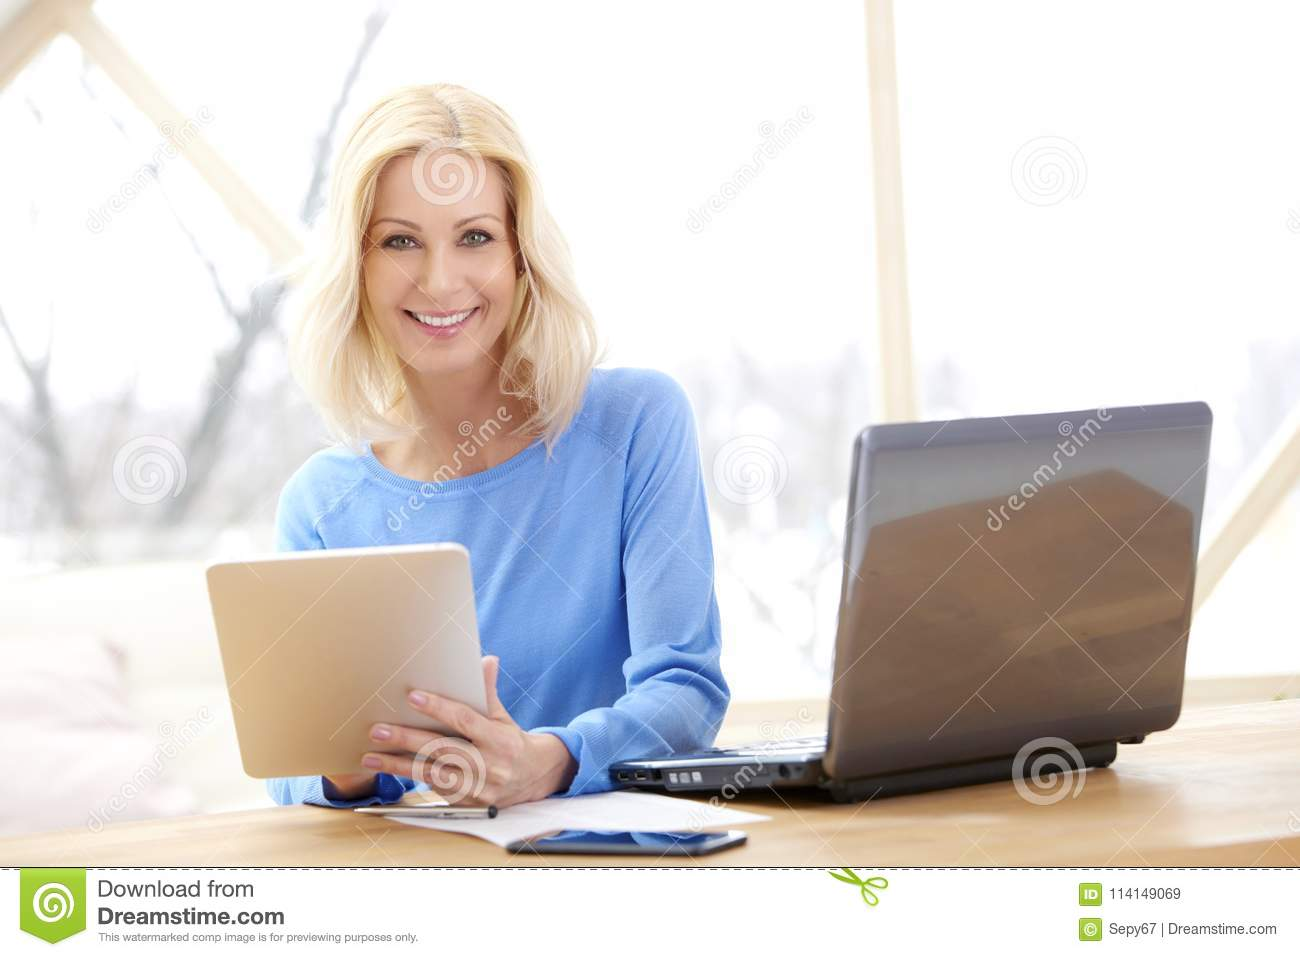 Sales Working Home Office In Sales Woman Using Digital Tablet Woman Using Digital Tablet Stock Image Of Entrepreneur